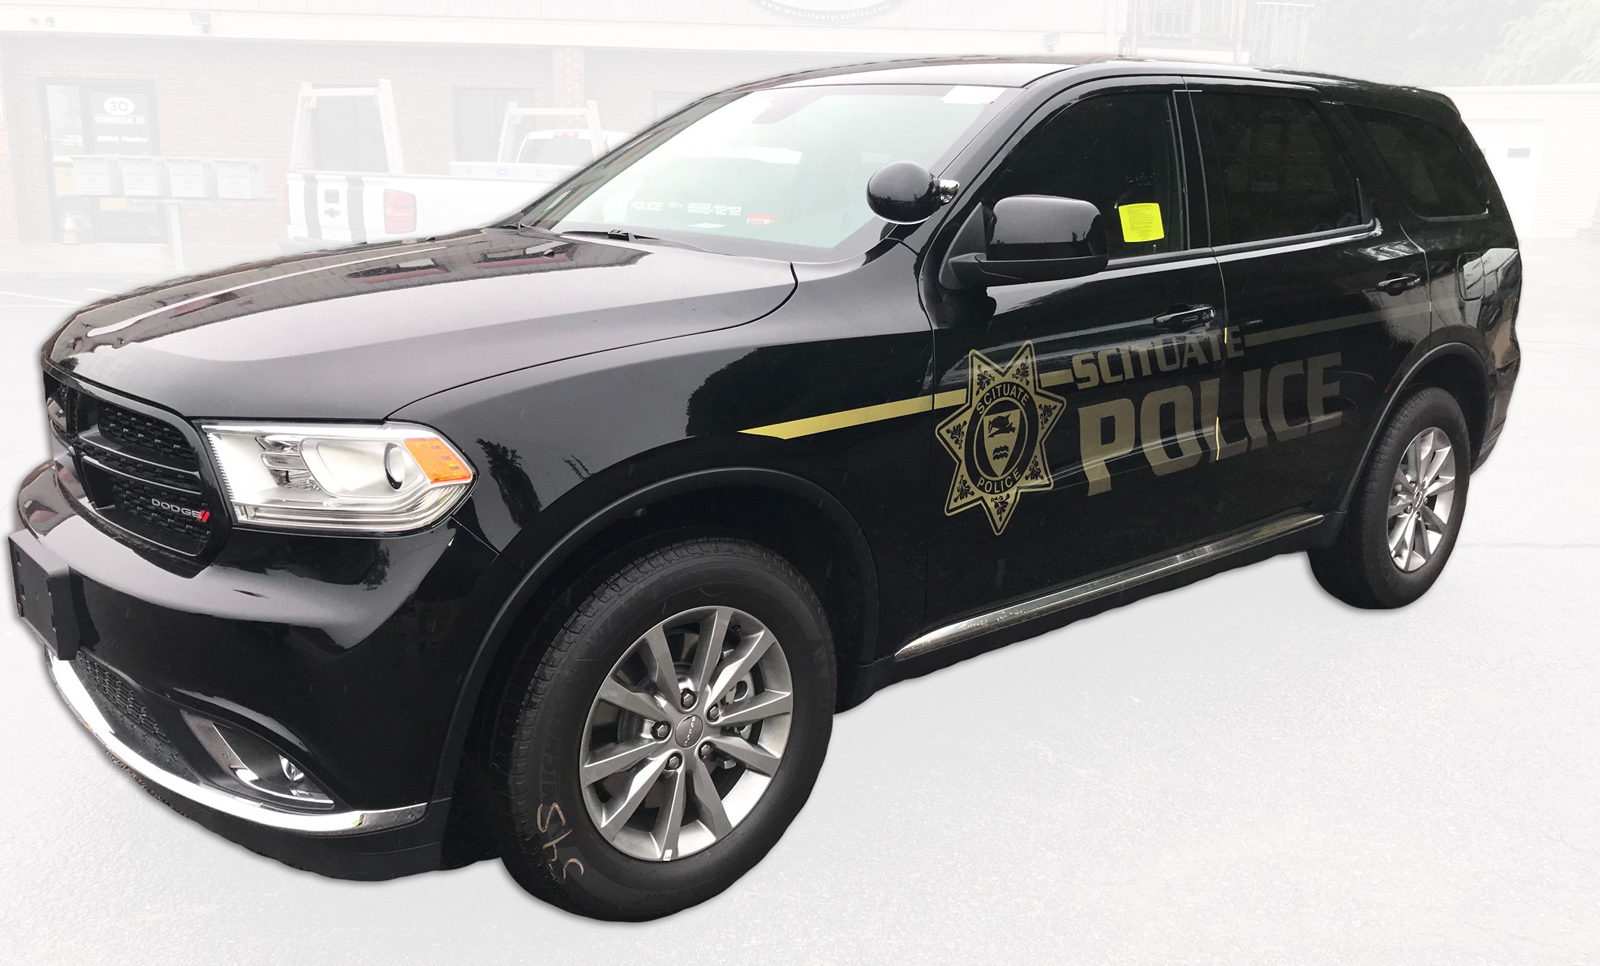 Scituate RI PD Stealth